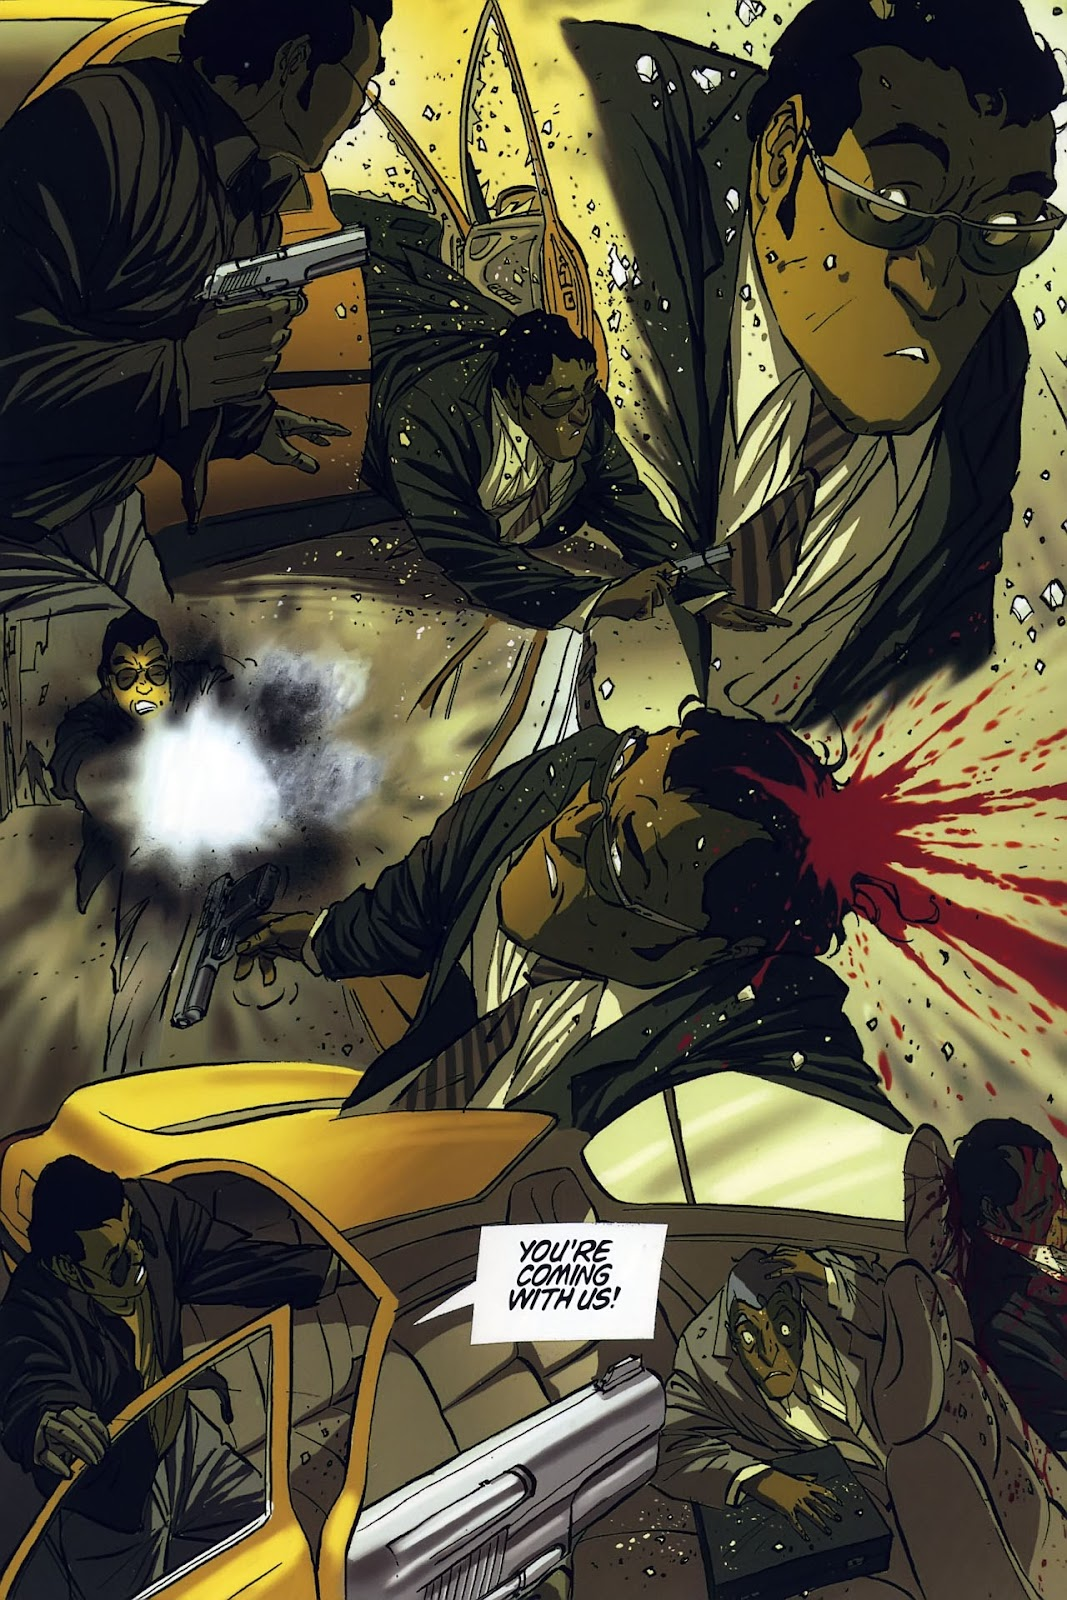 Read online The Killer comic -  Issue #8 - 18